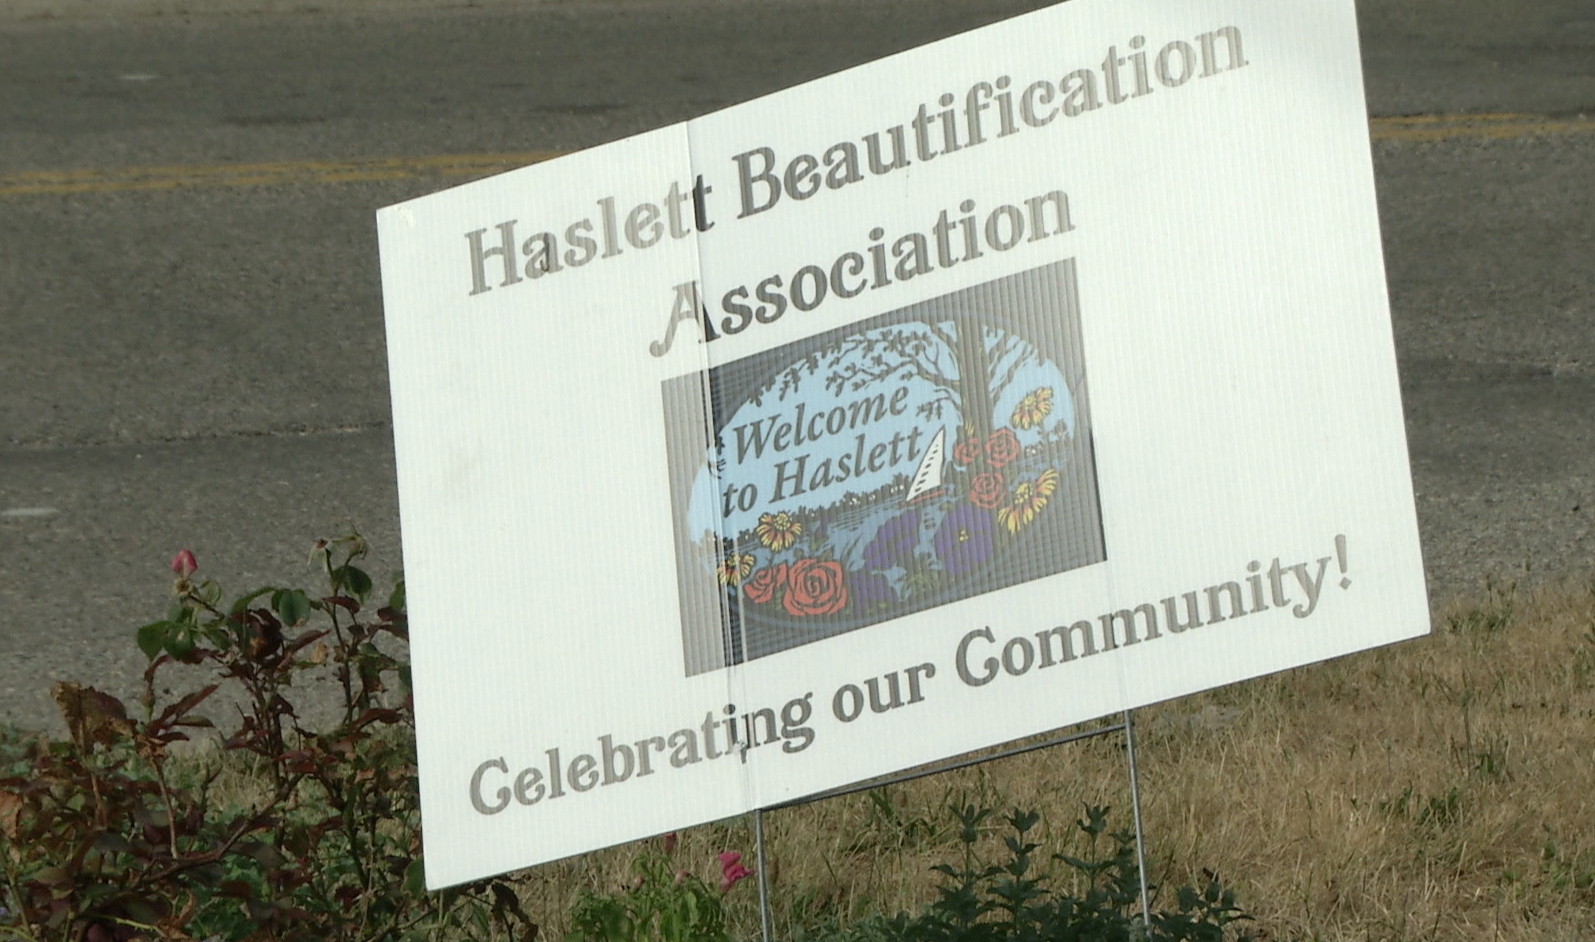 The Haslett Beautification Association 